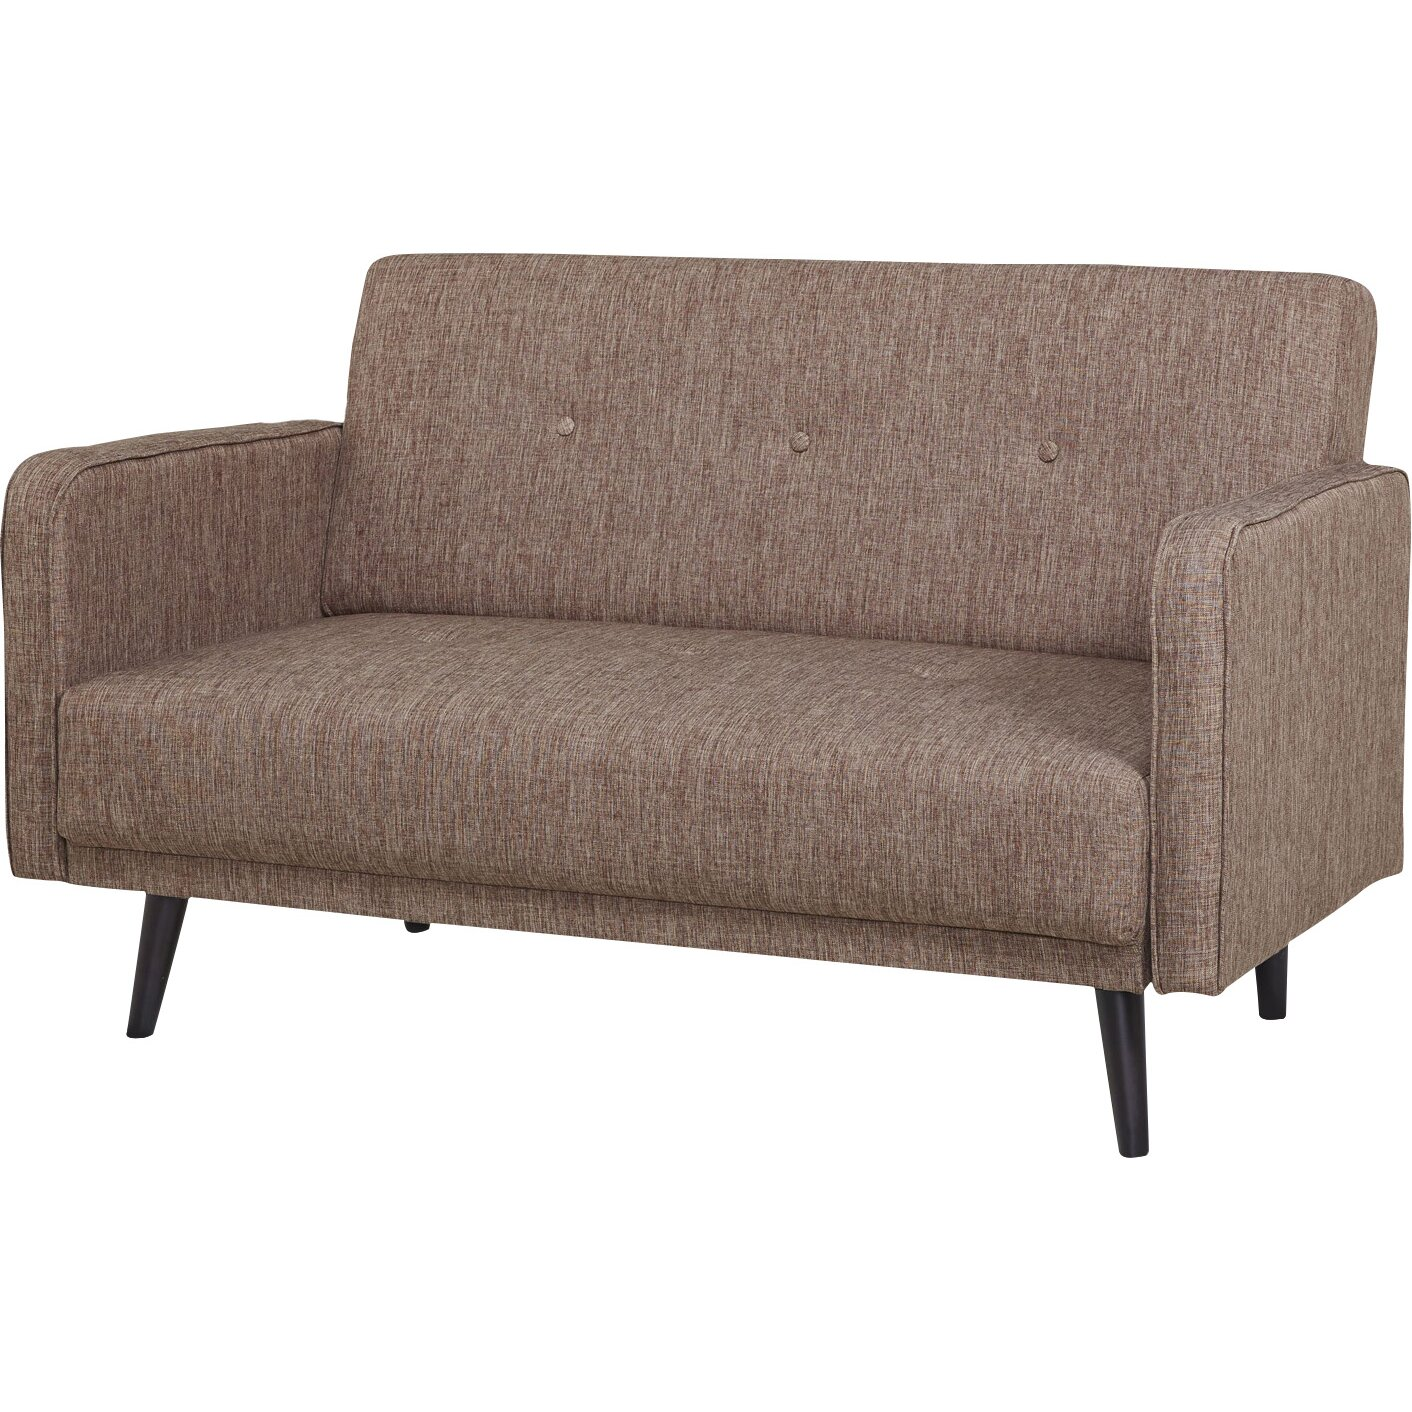 Langley street zelmo loveseat reviews wayfair for Outdoor furniture langley